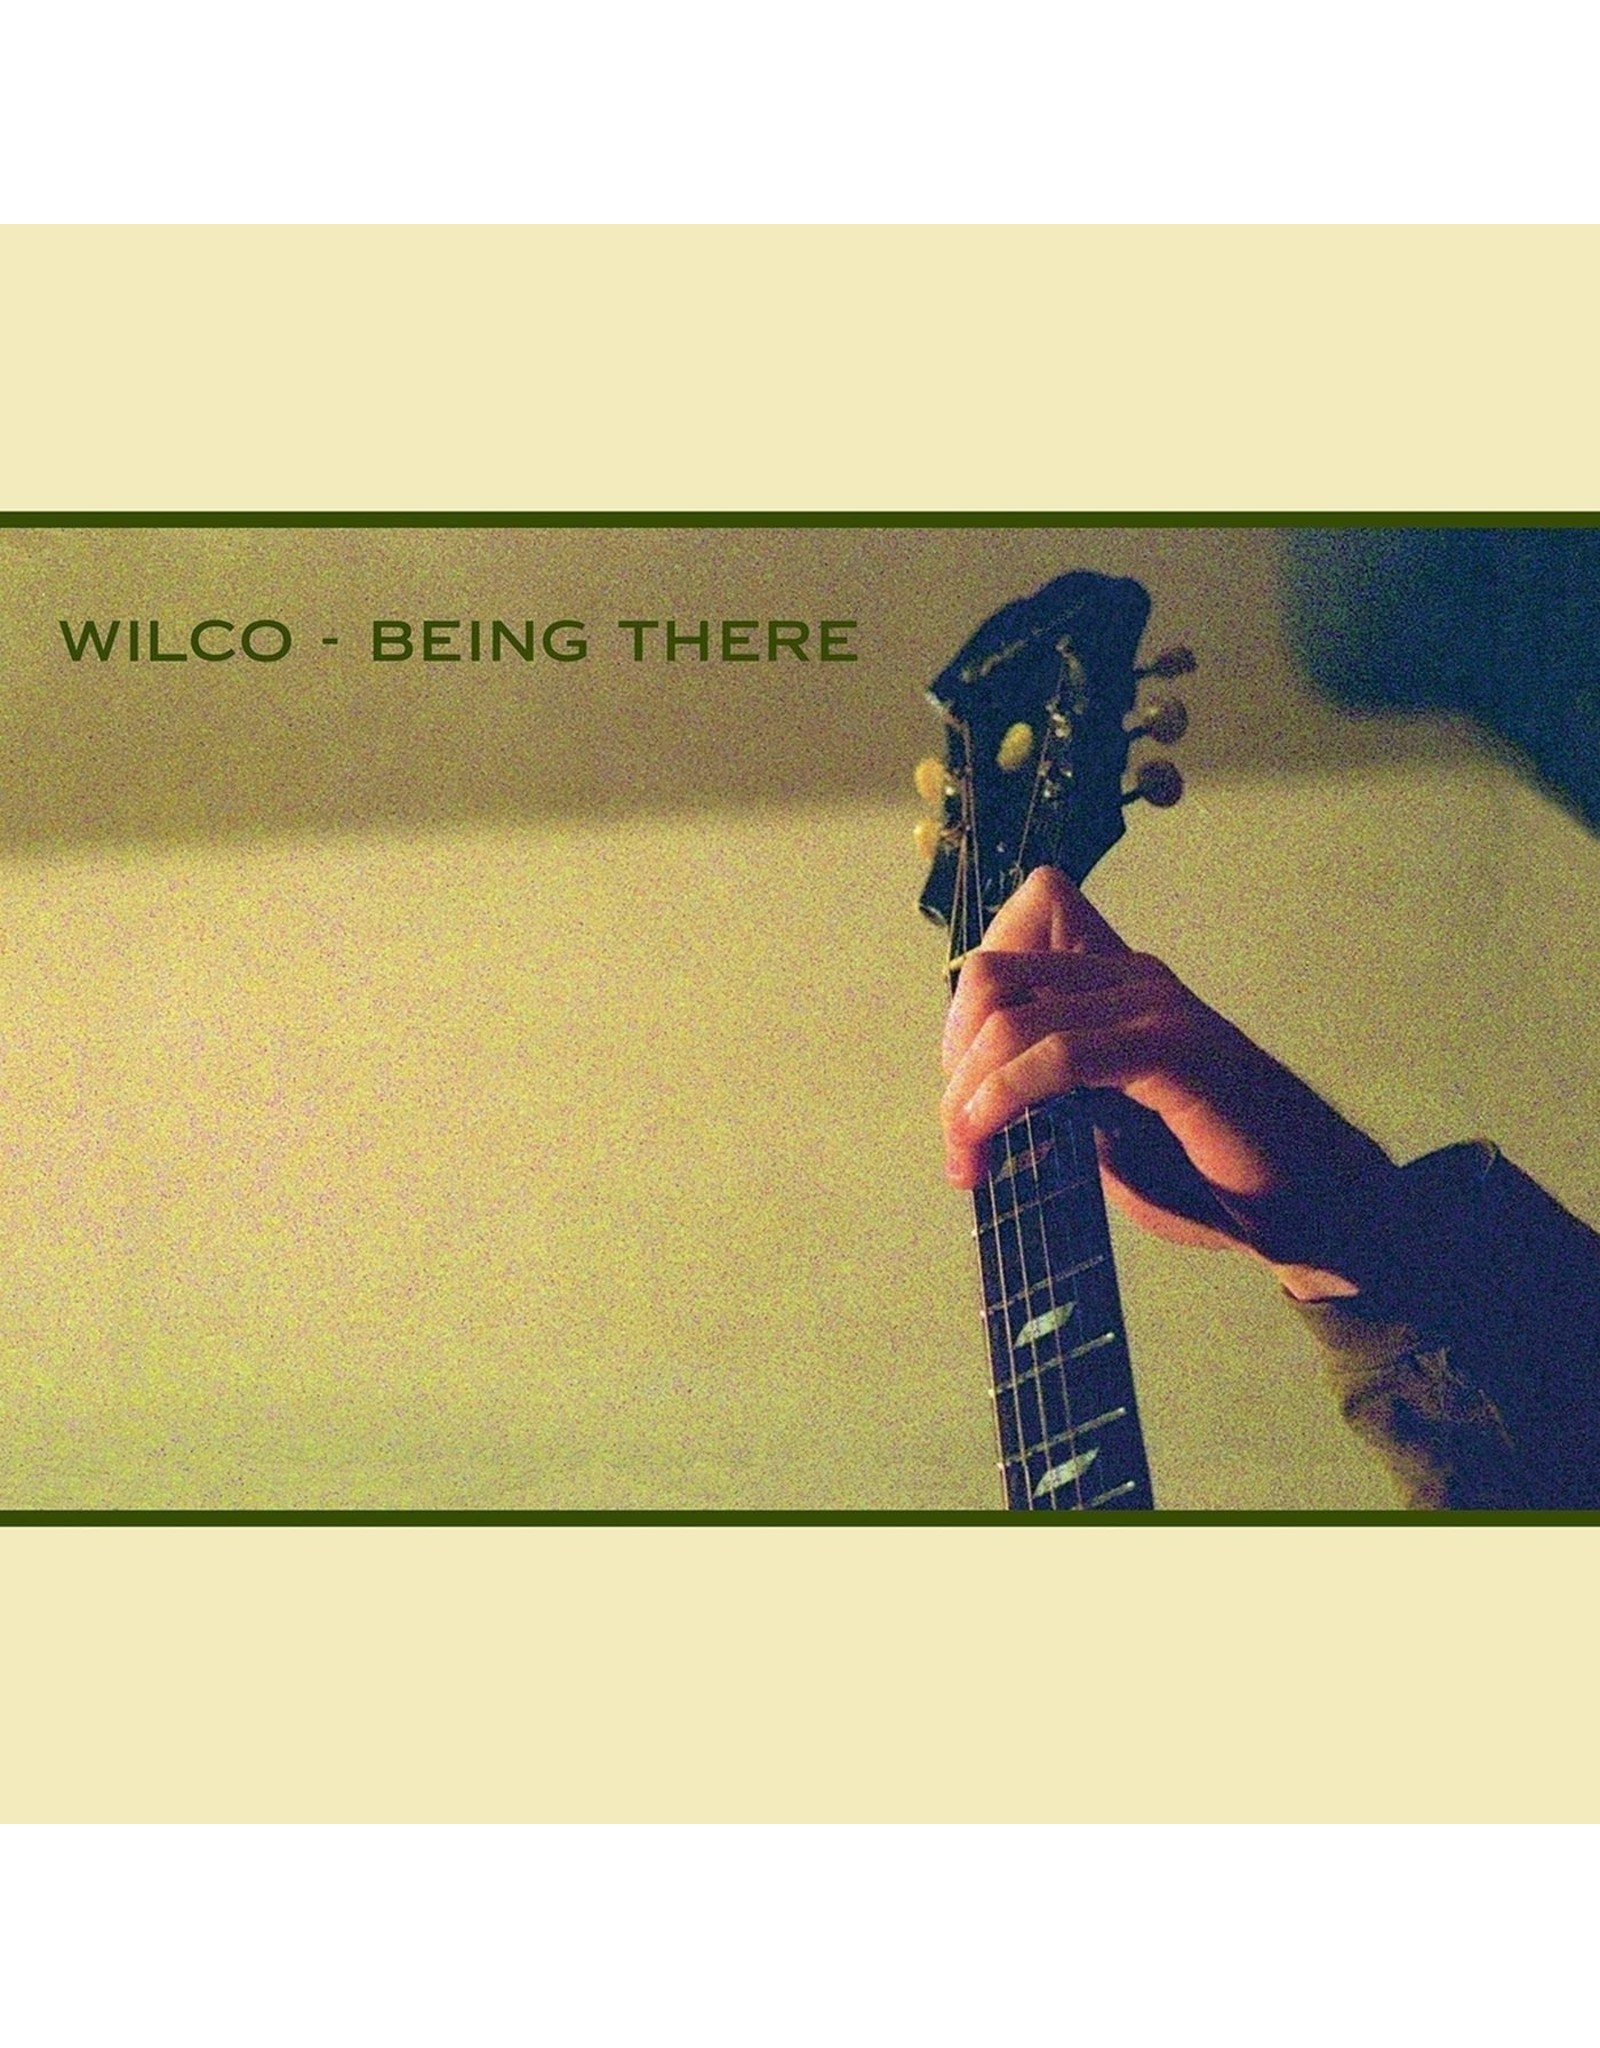 New Vinyl Wilco - Being There Deluxe 4LP Box